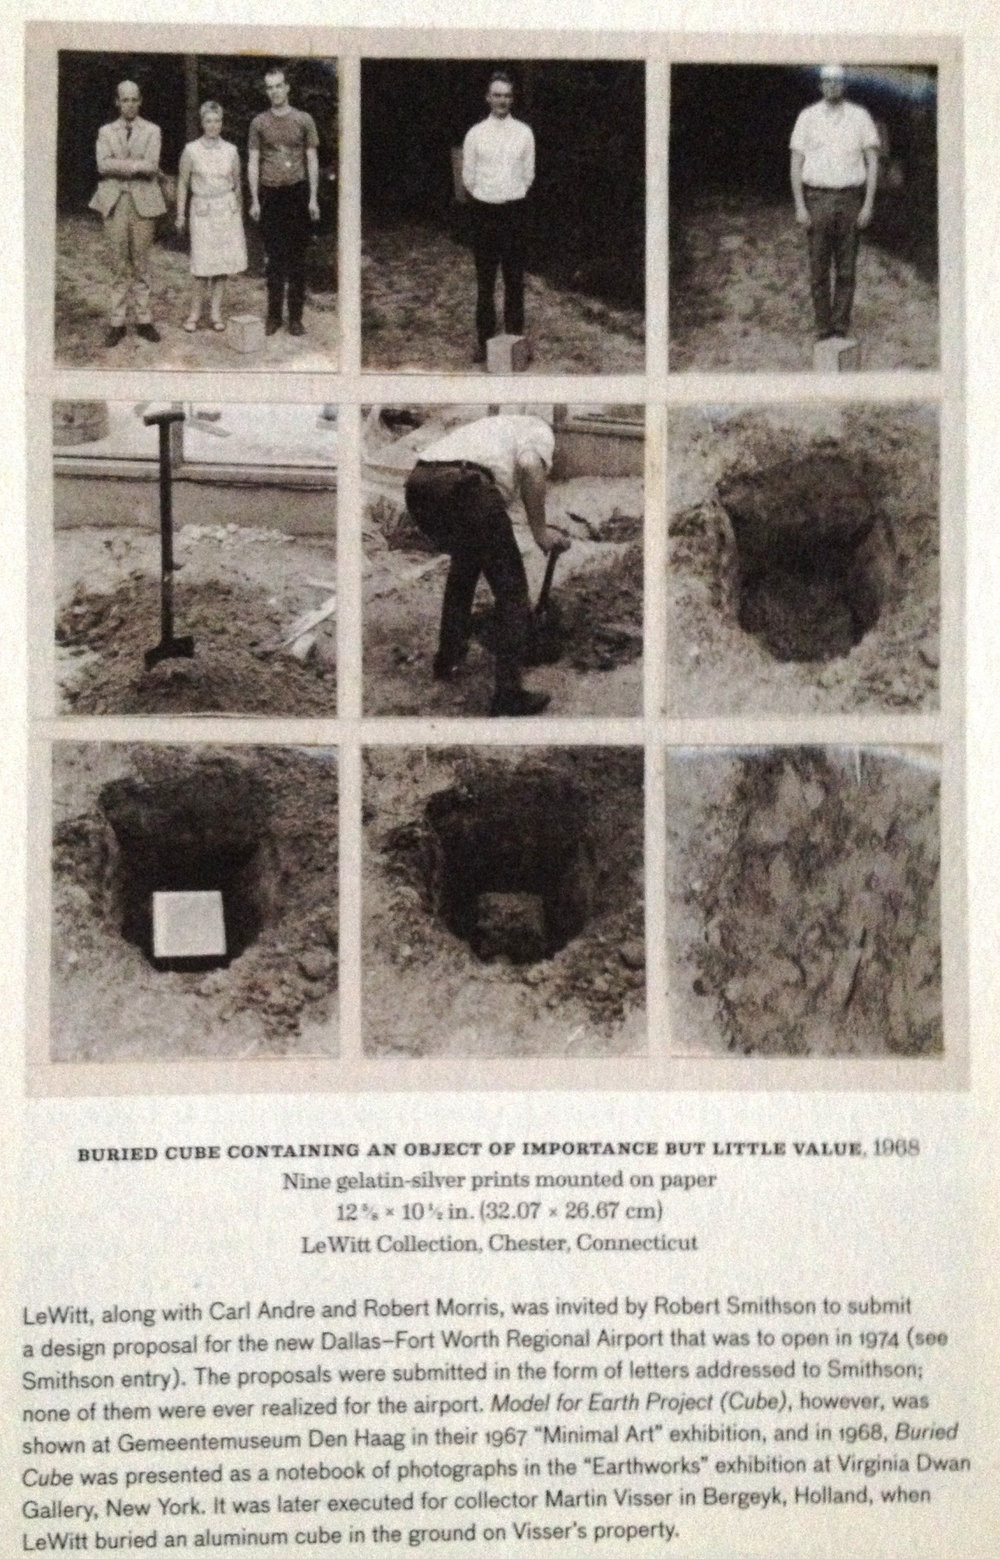 Philipp and Miwon Kwon, Ends of the Earth: Land Art to 1974 (Munich, New York: Prestel, 2012), 213